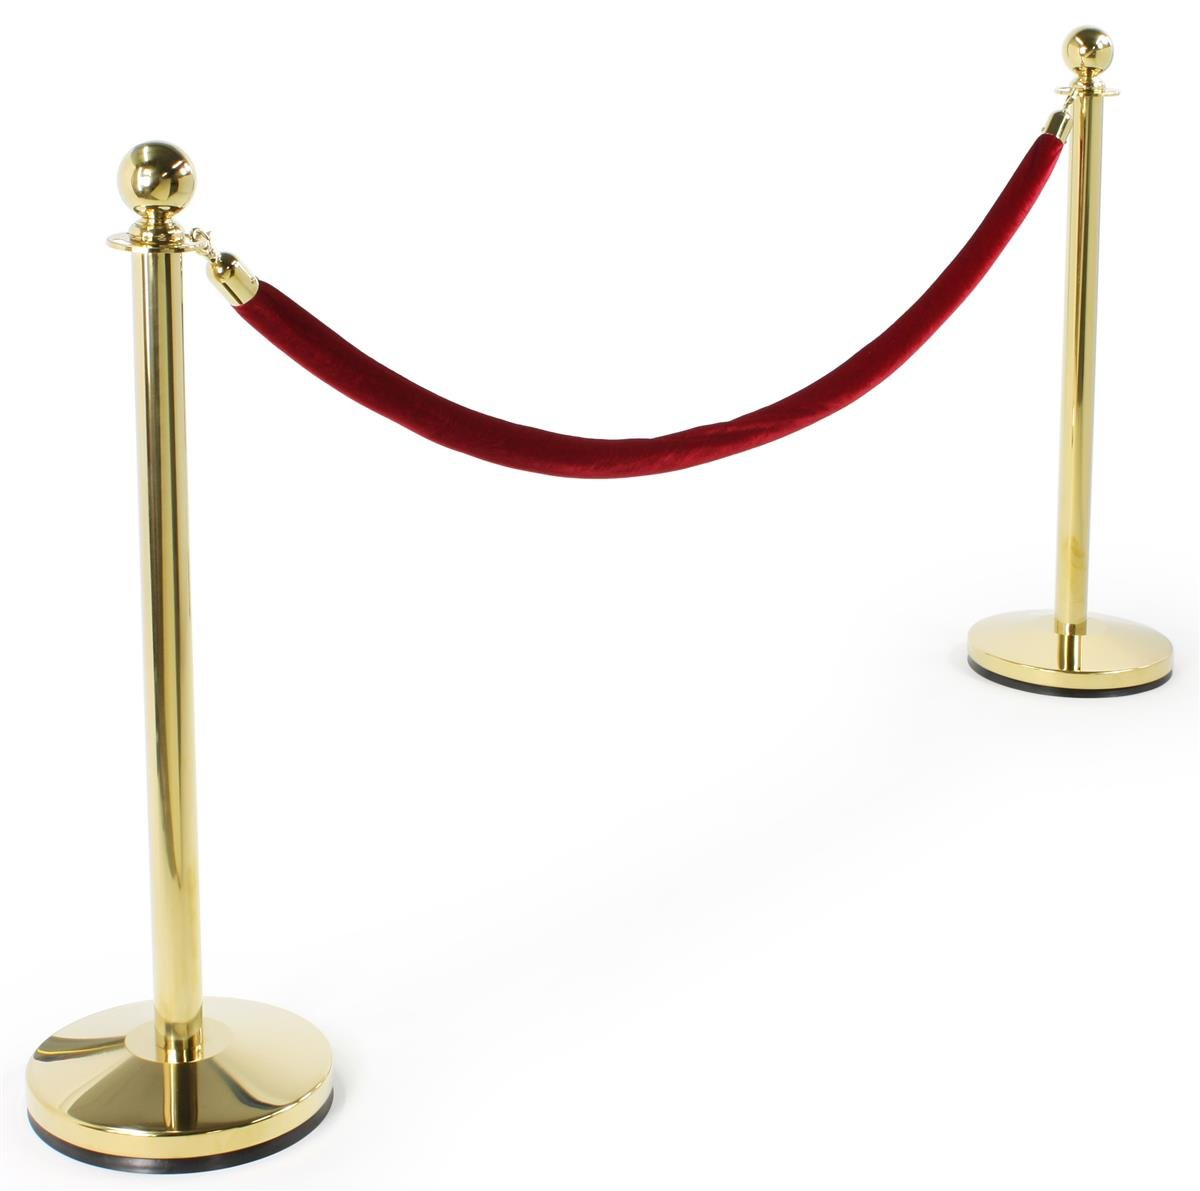 Set of Two Round Top Polished Brass Stanchion Posts with 6.5 Foot Red Burgundy Velvet Rope